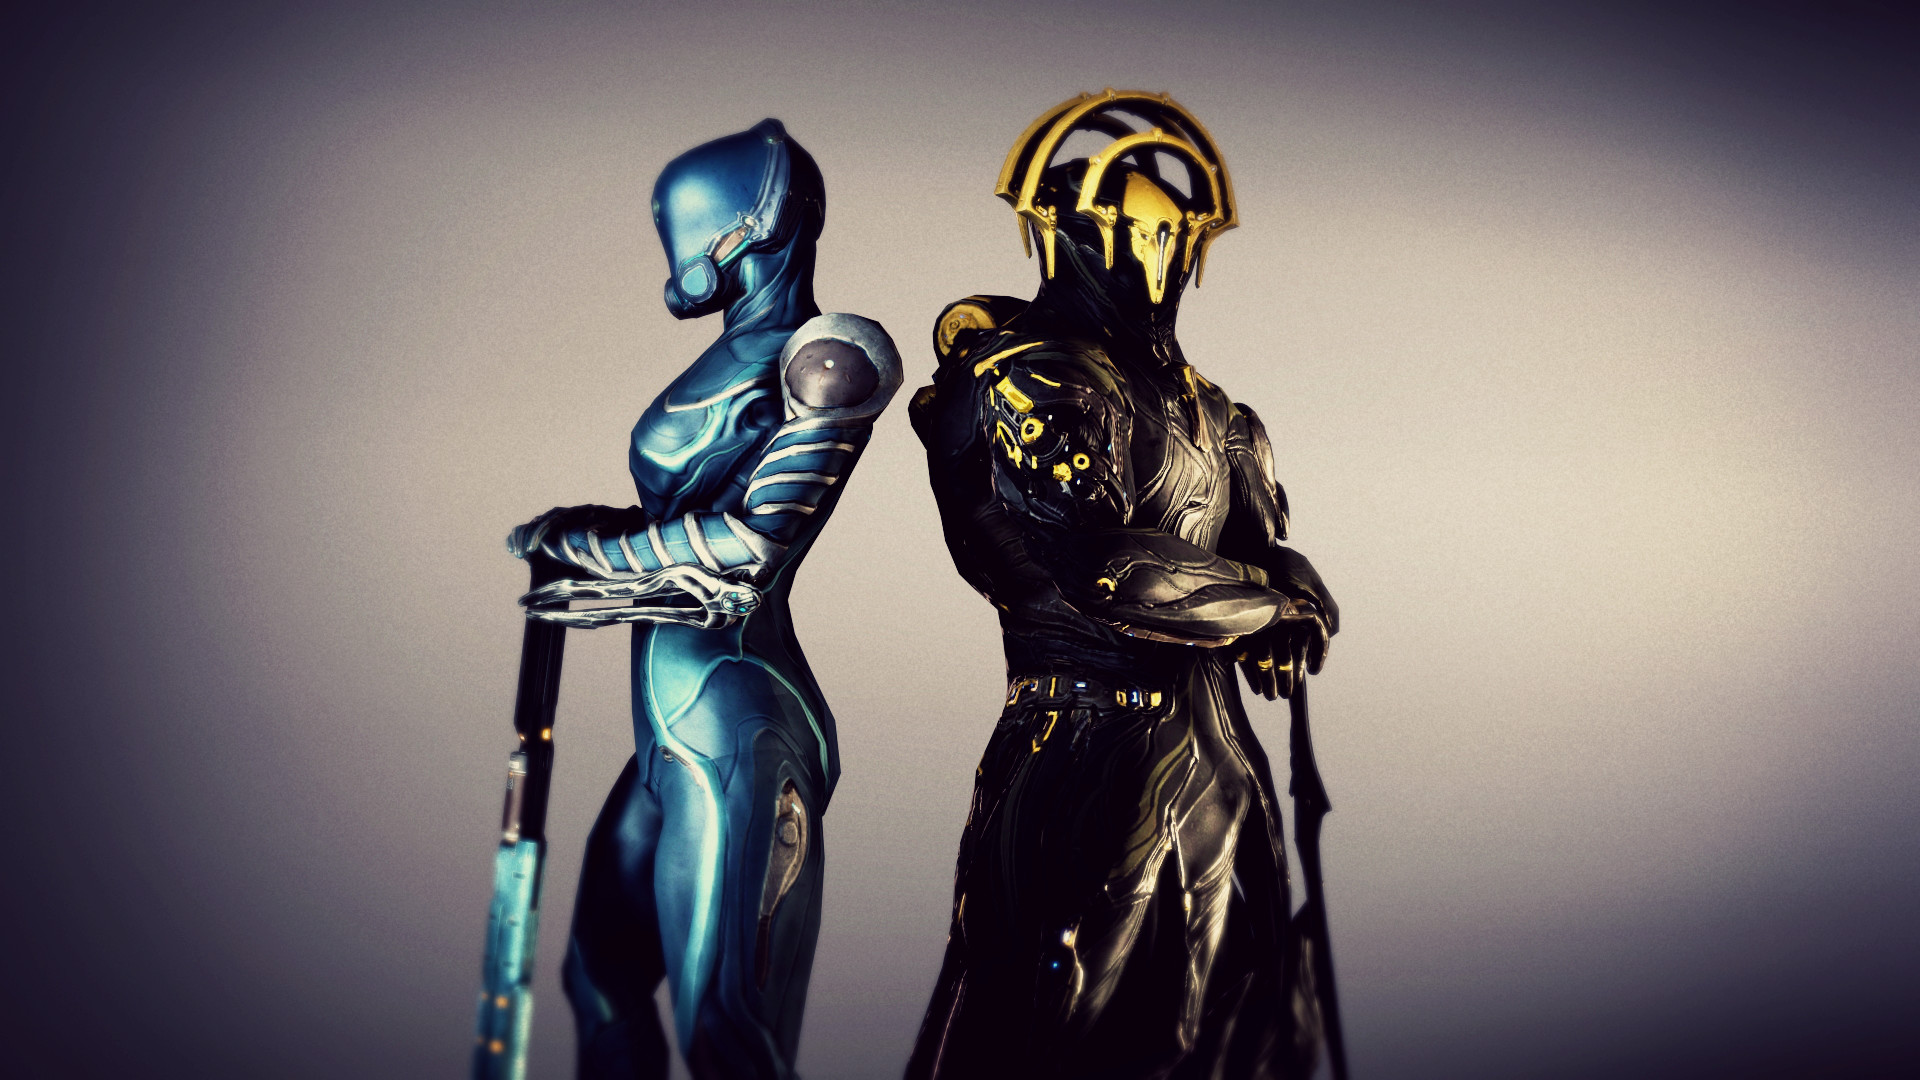 … Warframe: Frost Prime and Mag by hunger-maverick